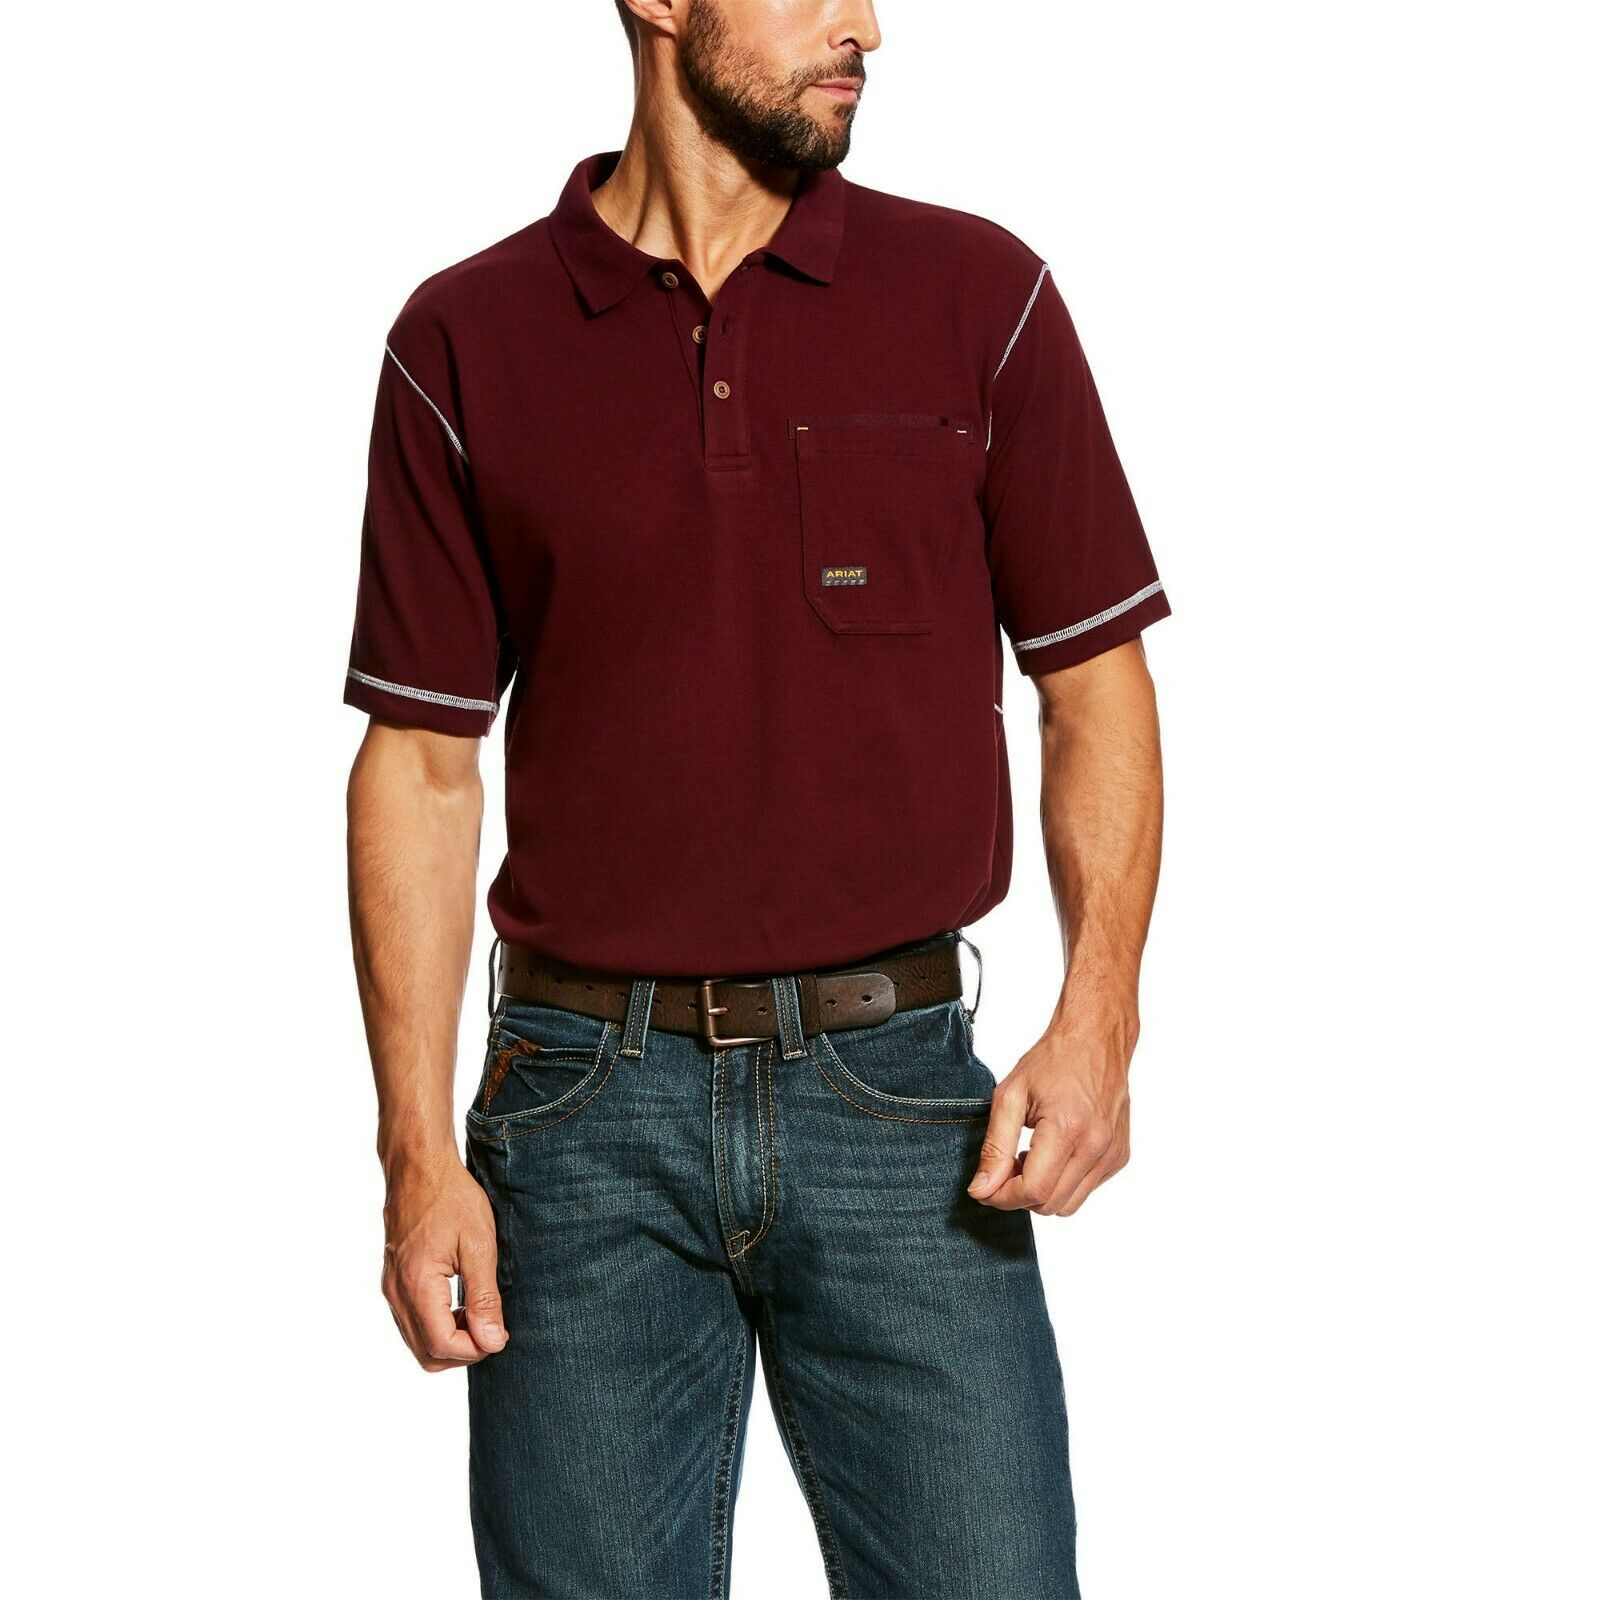 Ariat  Men's Malbec Rebar Workman Polo Shirt 10022418